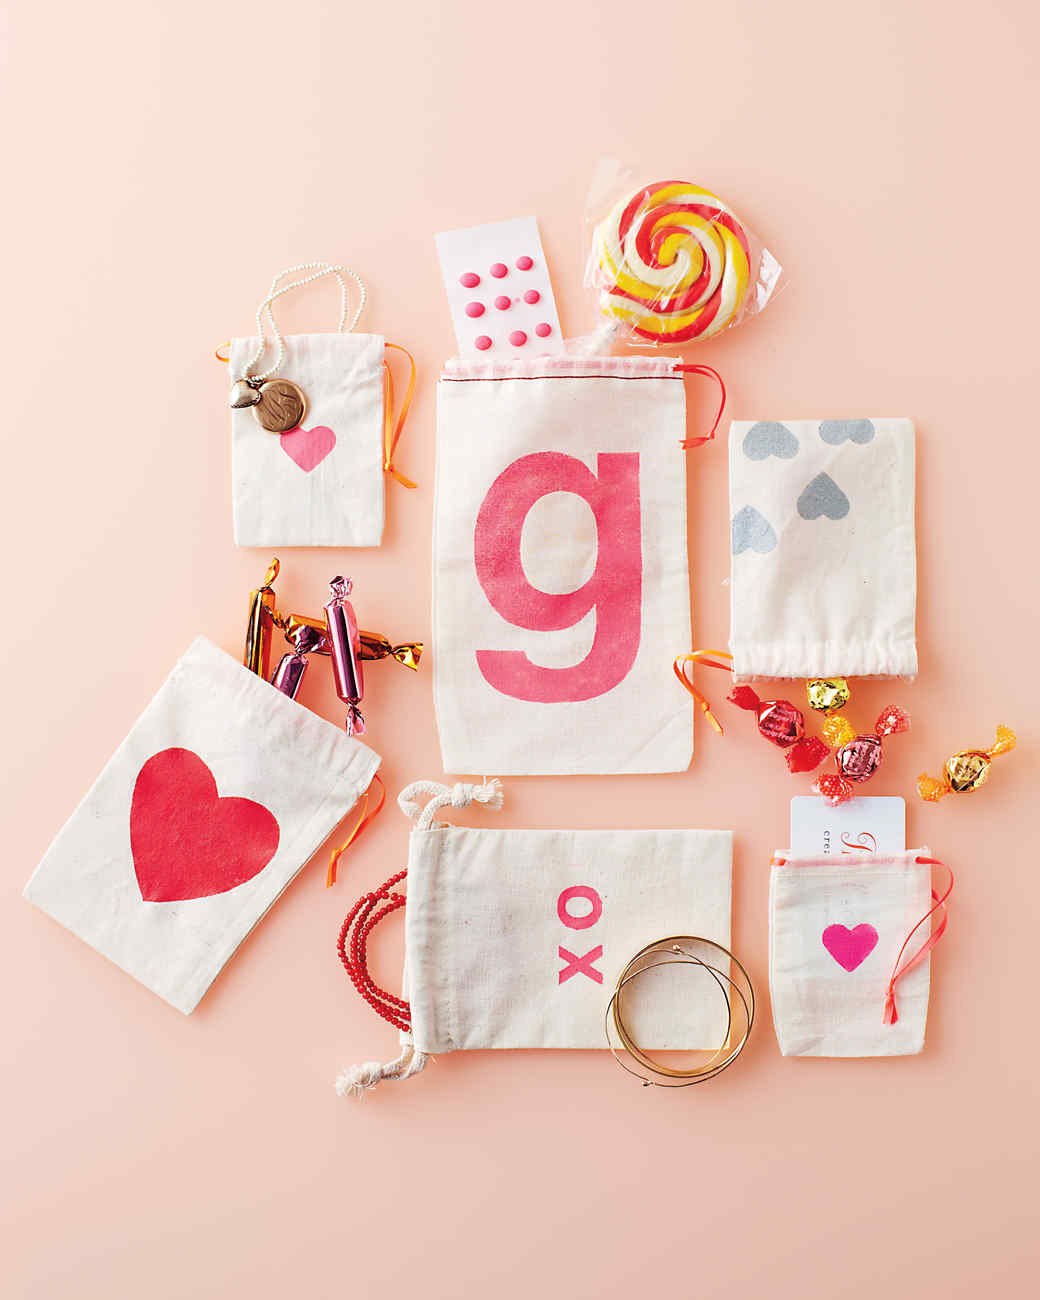 37 Valentine's Day Crafts to Make From the Heart | Martha Stewart